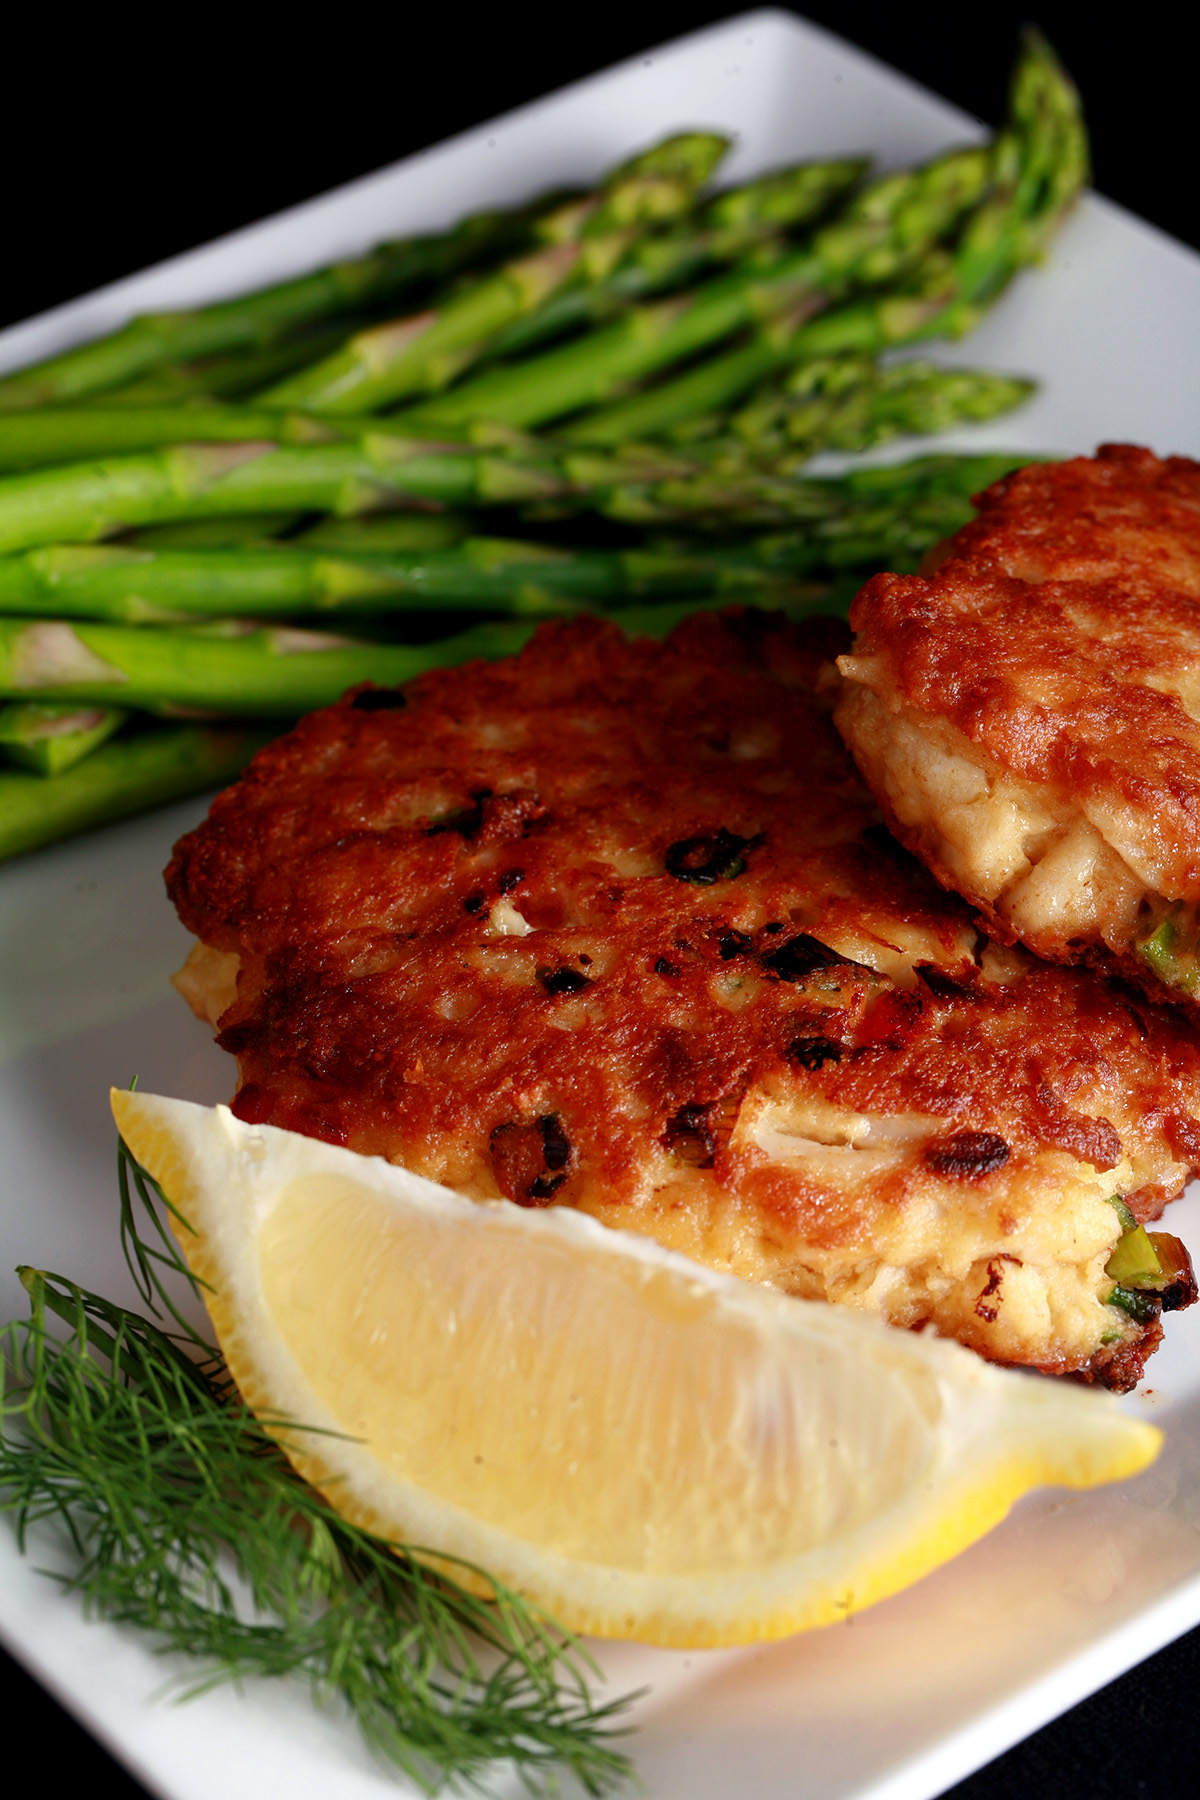 2 Gluten-free Crab Cakes on a plate with asparagus, a lemon slice, and some fresh dill.